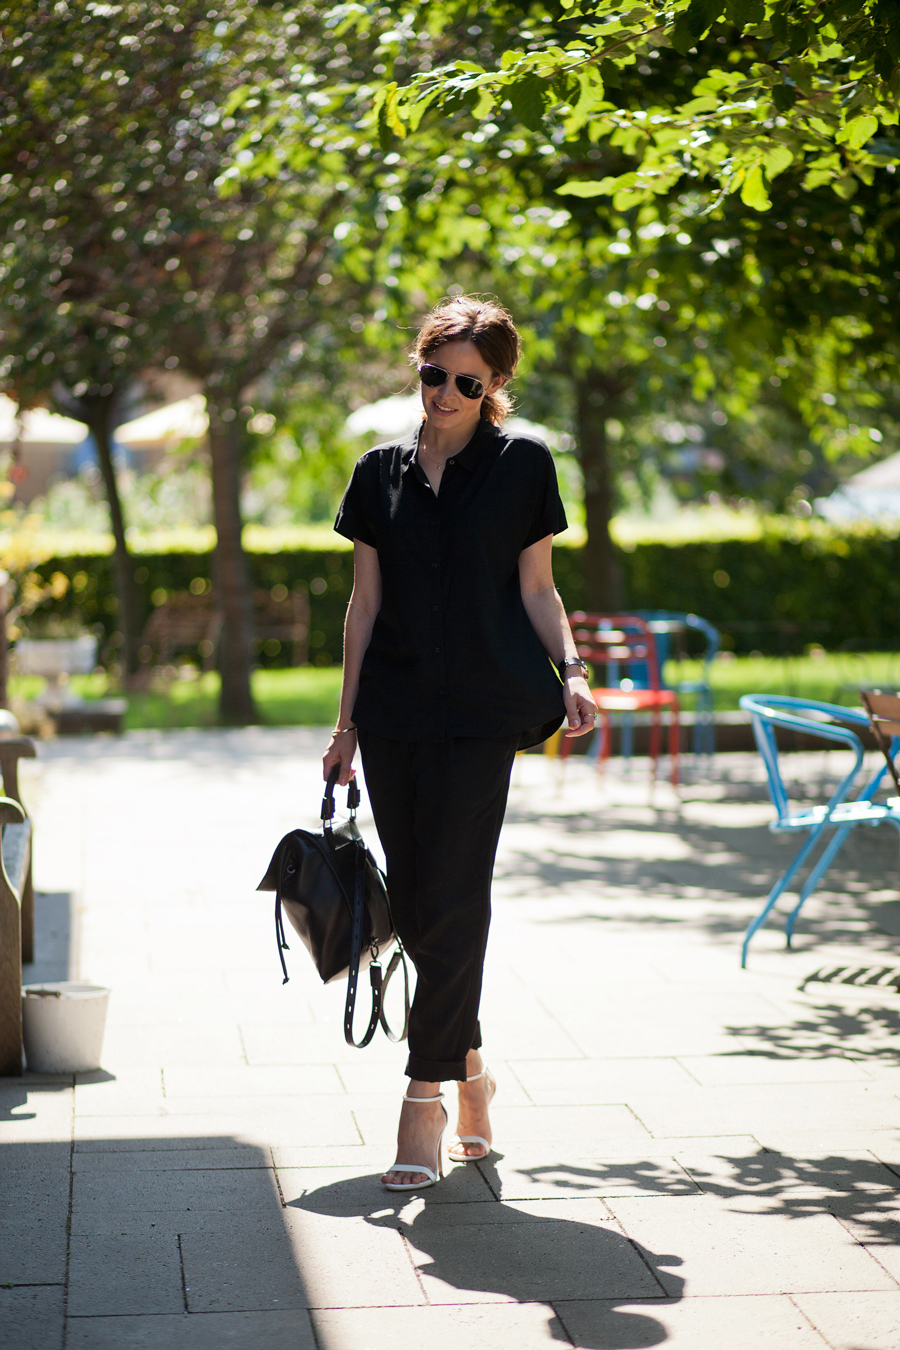 Christine Reehorst is wearing all black, shirt from Uniqlo, trousers fom H&M, shoes from Zara, backpack from TopShop and sunnies from RayBan